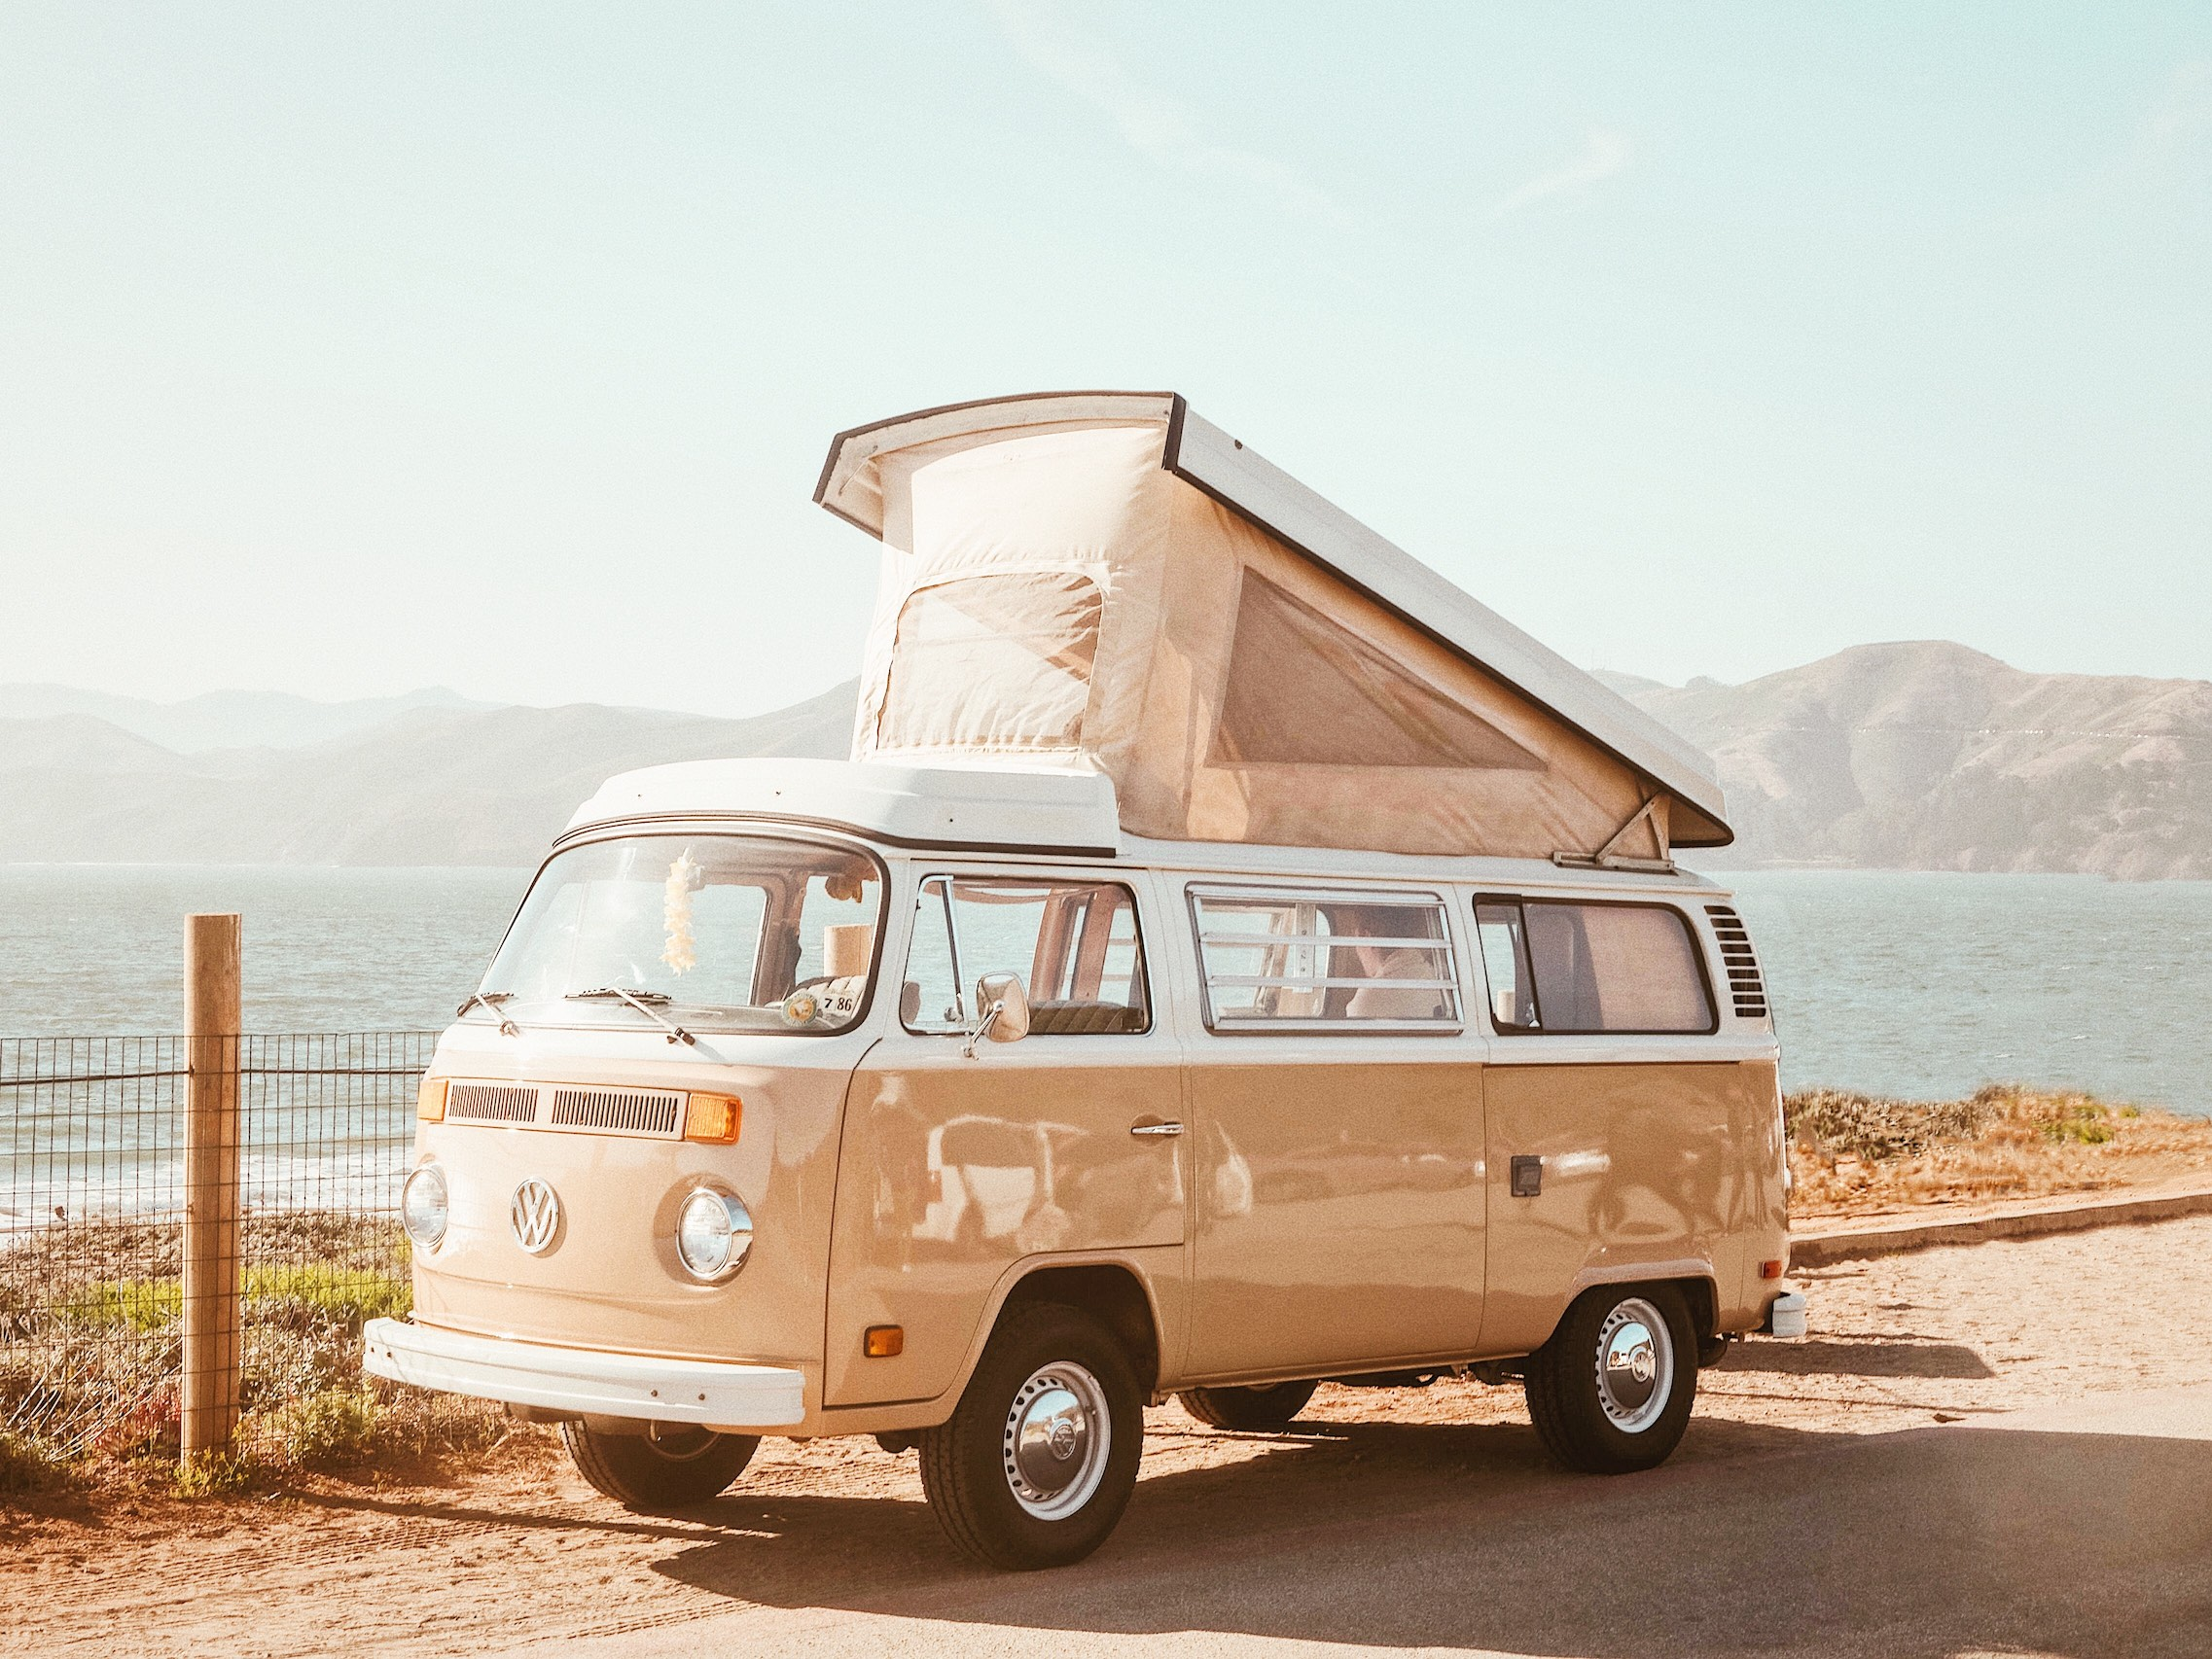 surftrip with vw bus